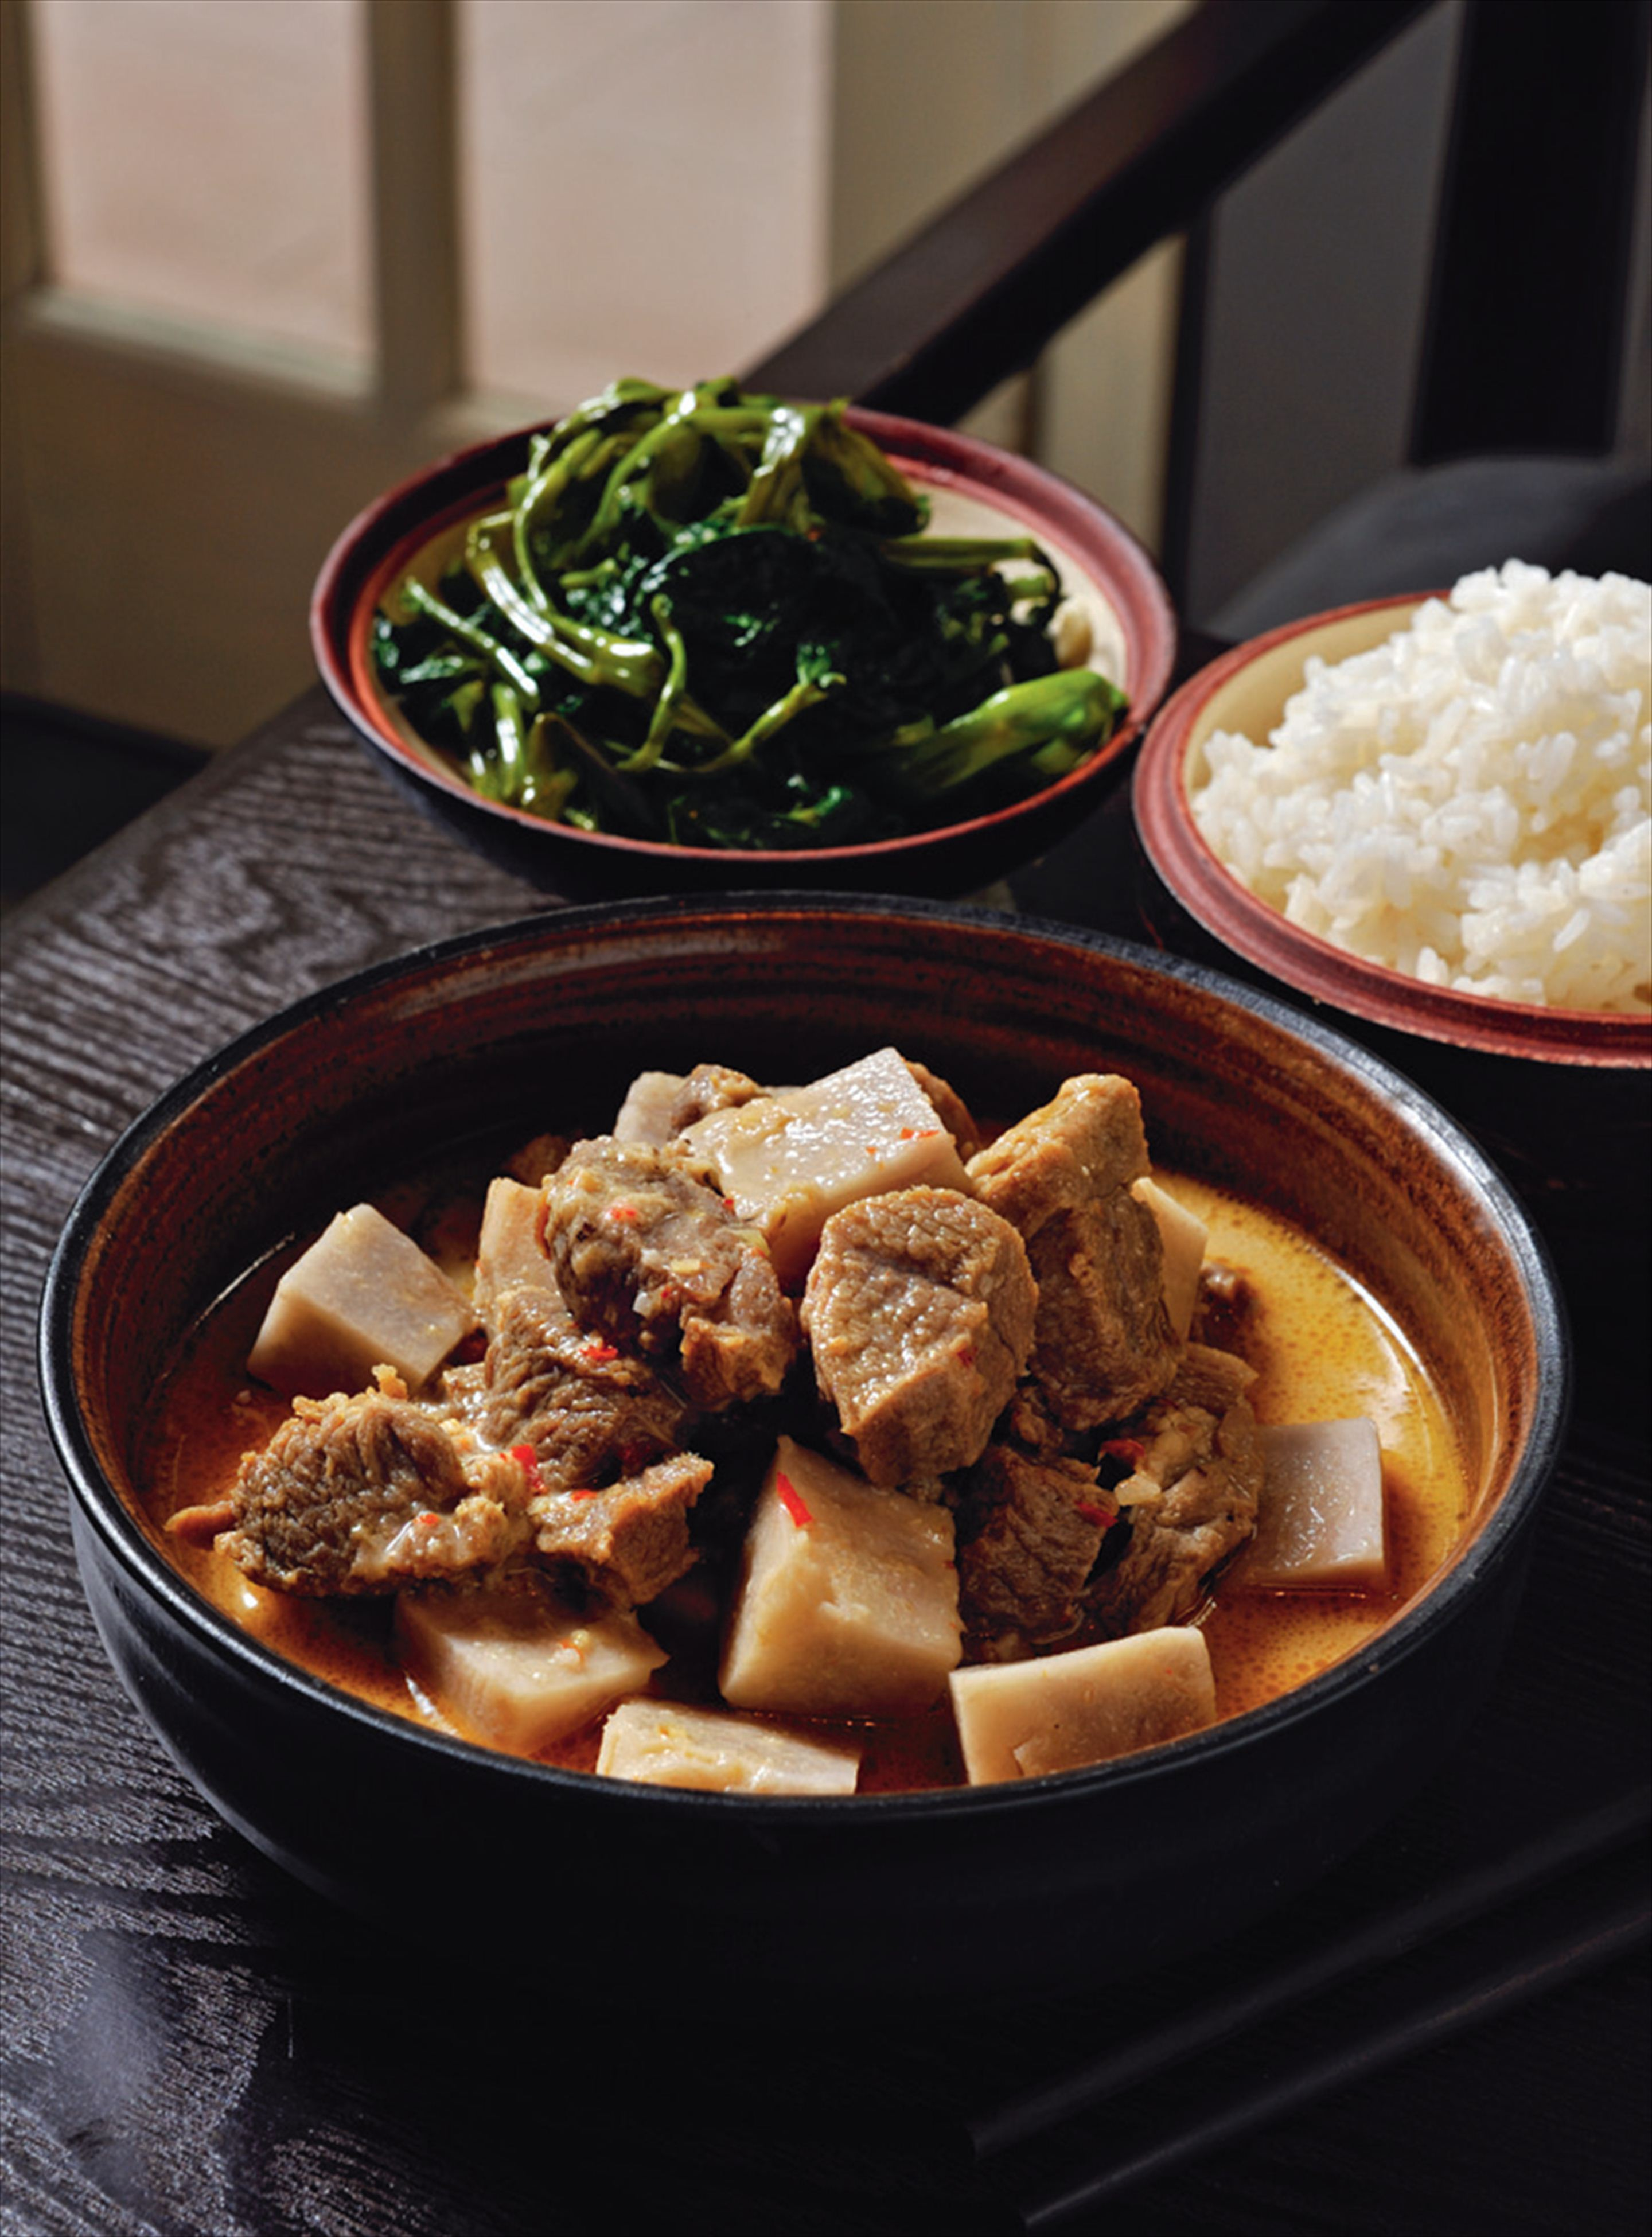 Braised goat with fermented tofu